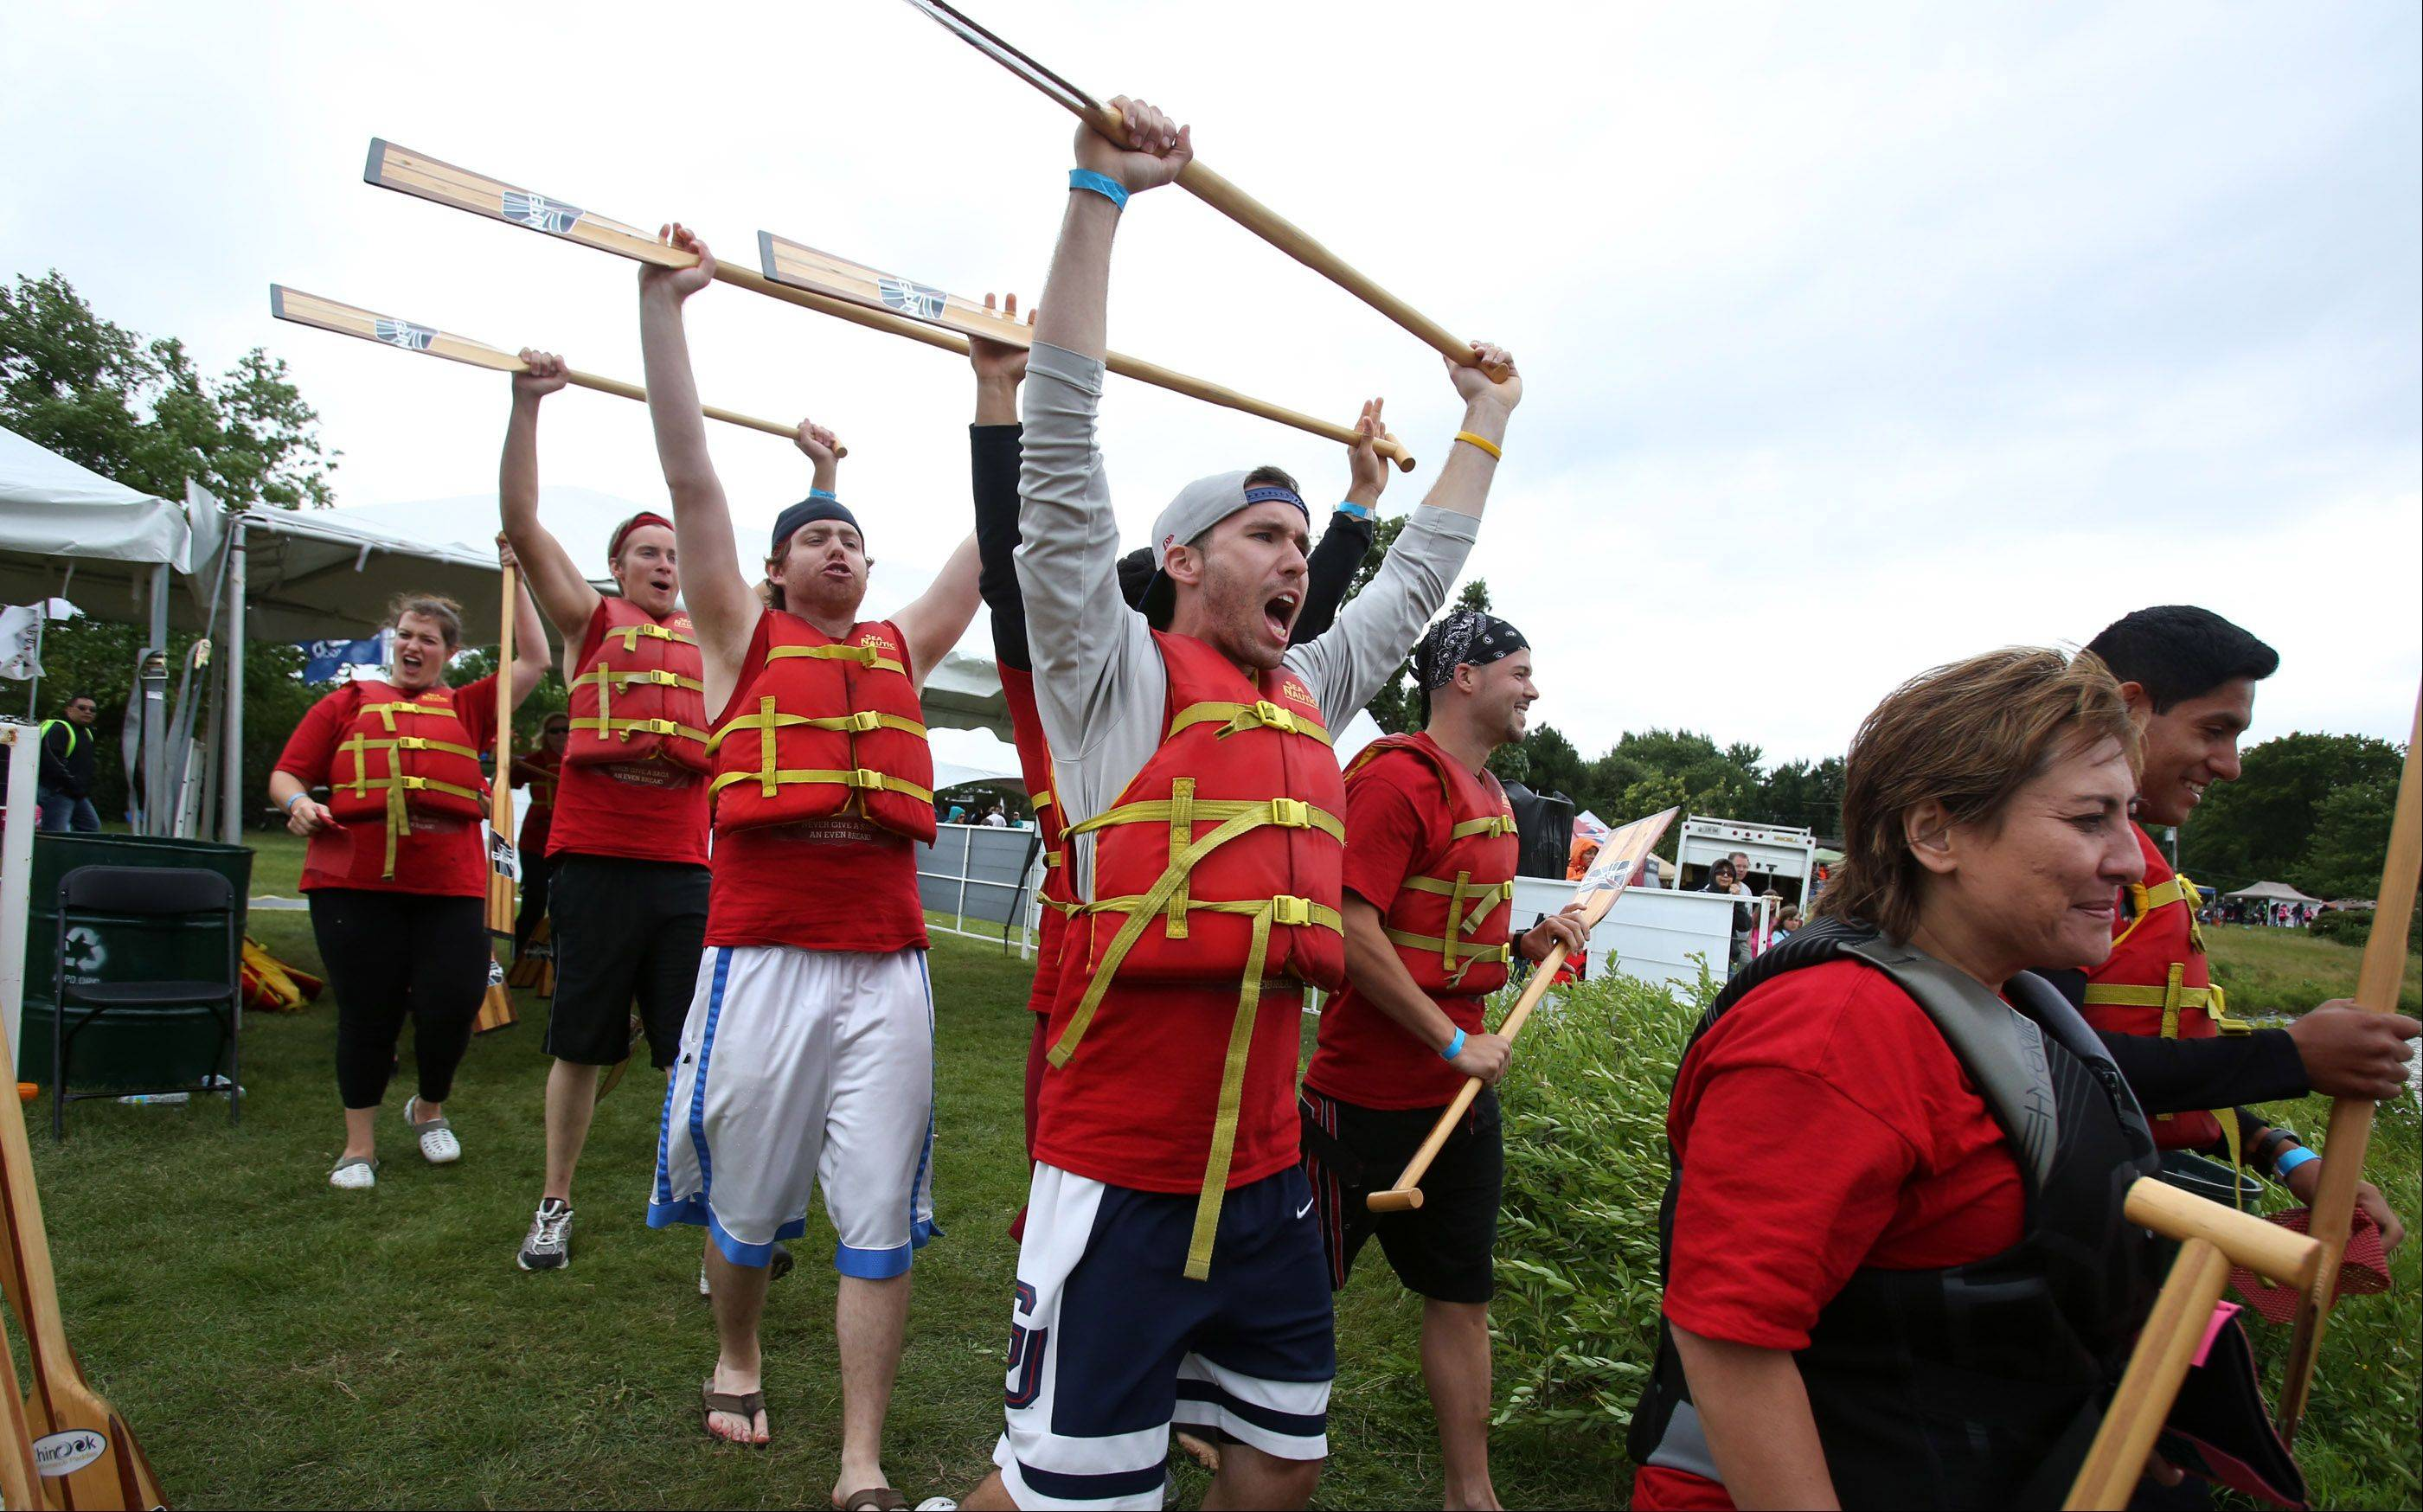 Red Fitness Center paddlers head to their dragon boat at the Walgreens Chicago International Dragon Boat Festival Saturday at Lake Arlington in Arlington Heights.